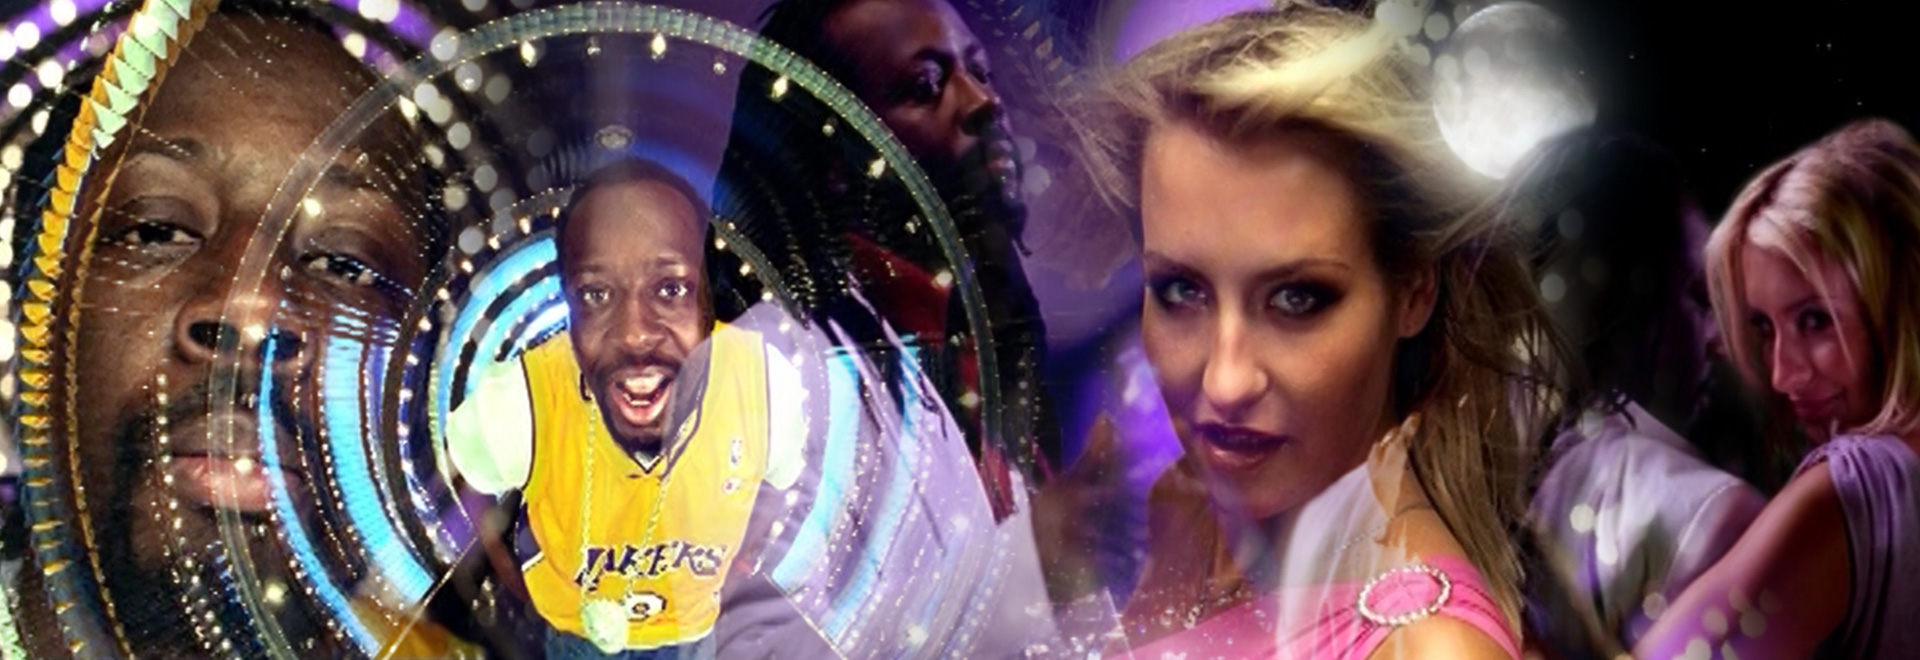 js-filmproduction-postproduction-musicvideo-wyclef-jean-sarah-connor-header